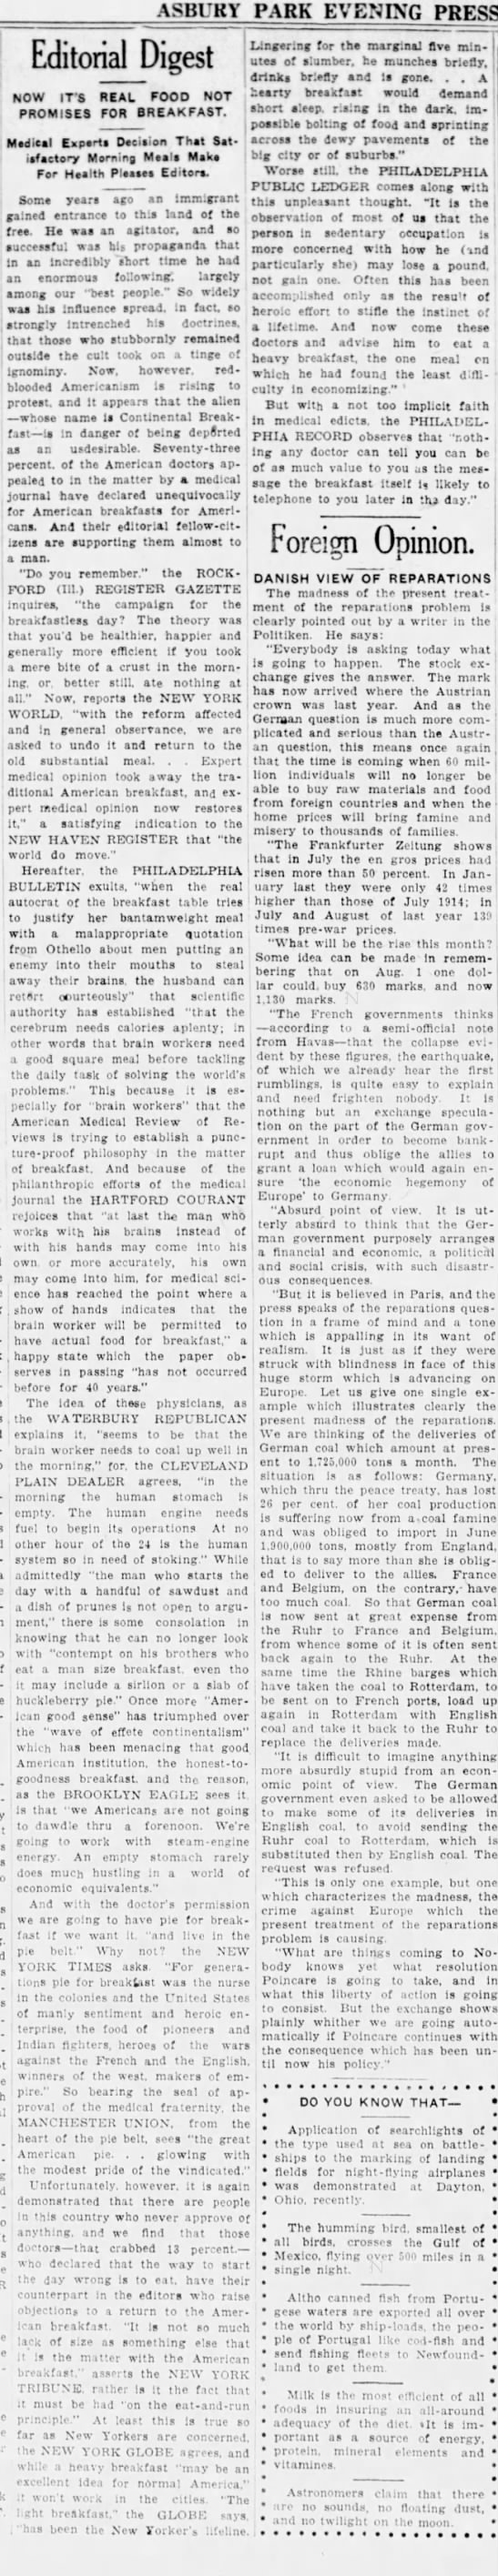 Asbury Park Press(Asbury Park, New Jersey 09091922, Sat - i 1 : prob-; , ; ! journal have declared...